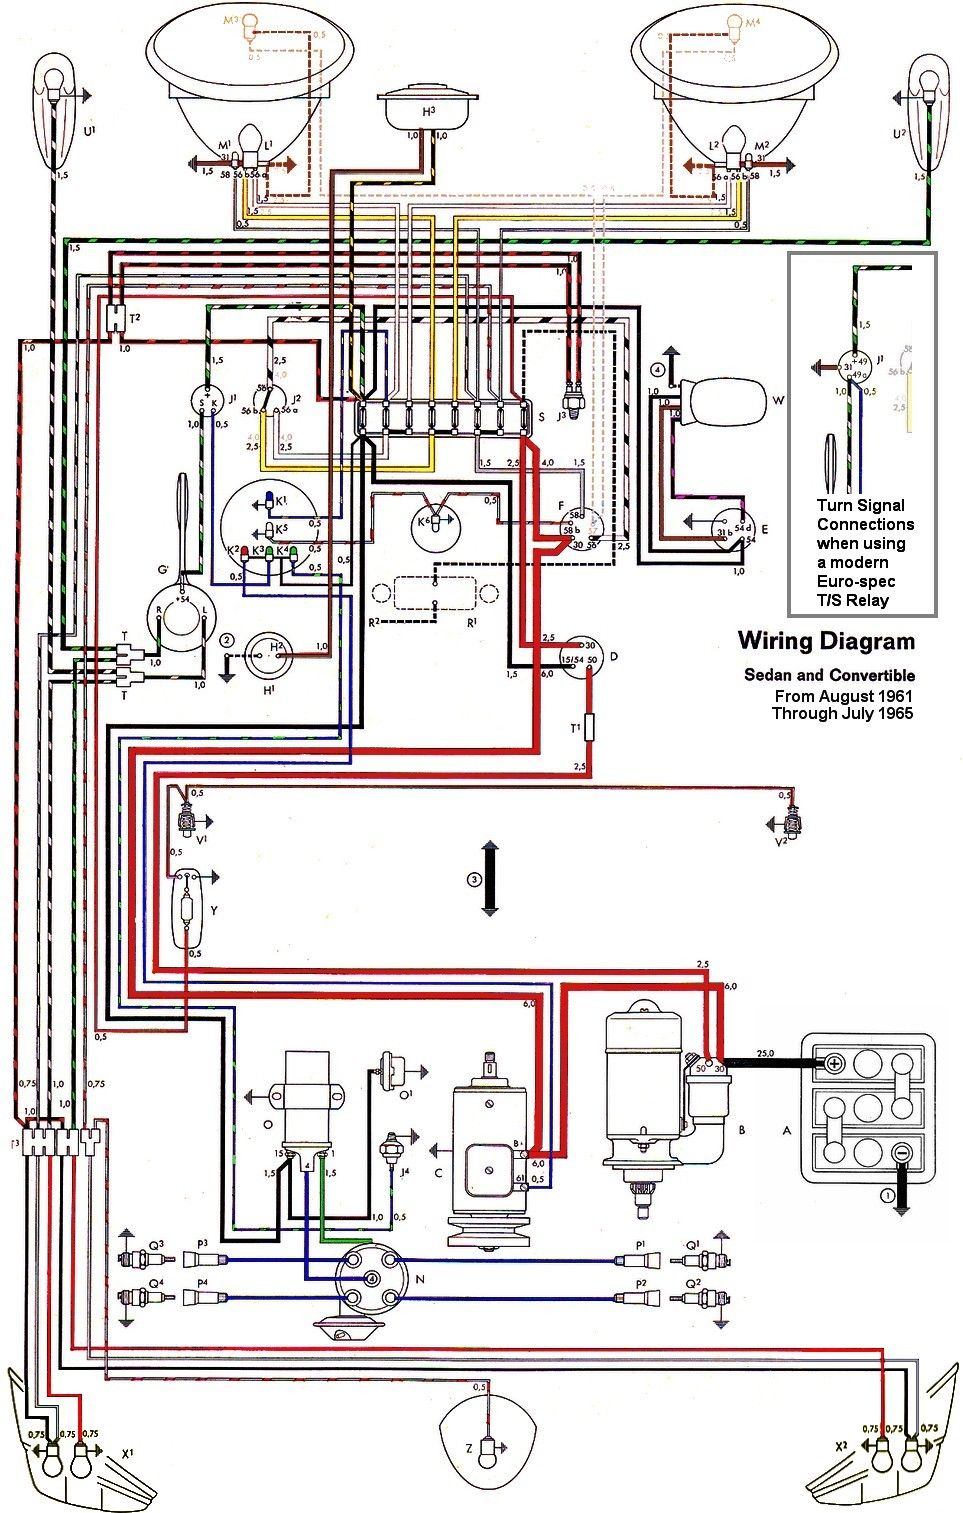 wiring diagram vw beetle sedan and convertible 1961 1965 vw vw beetle gauge wiring diagram vw beetle sedan and convertible 1961 1965